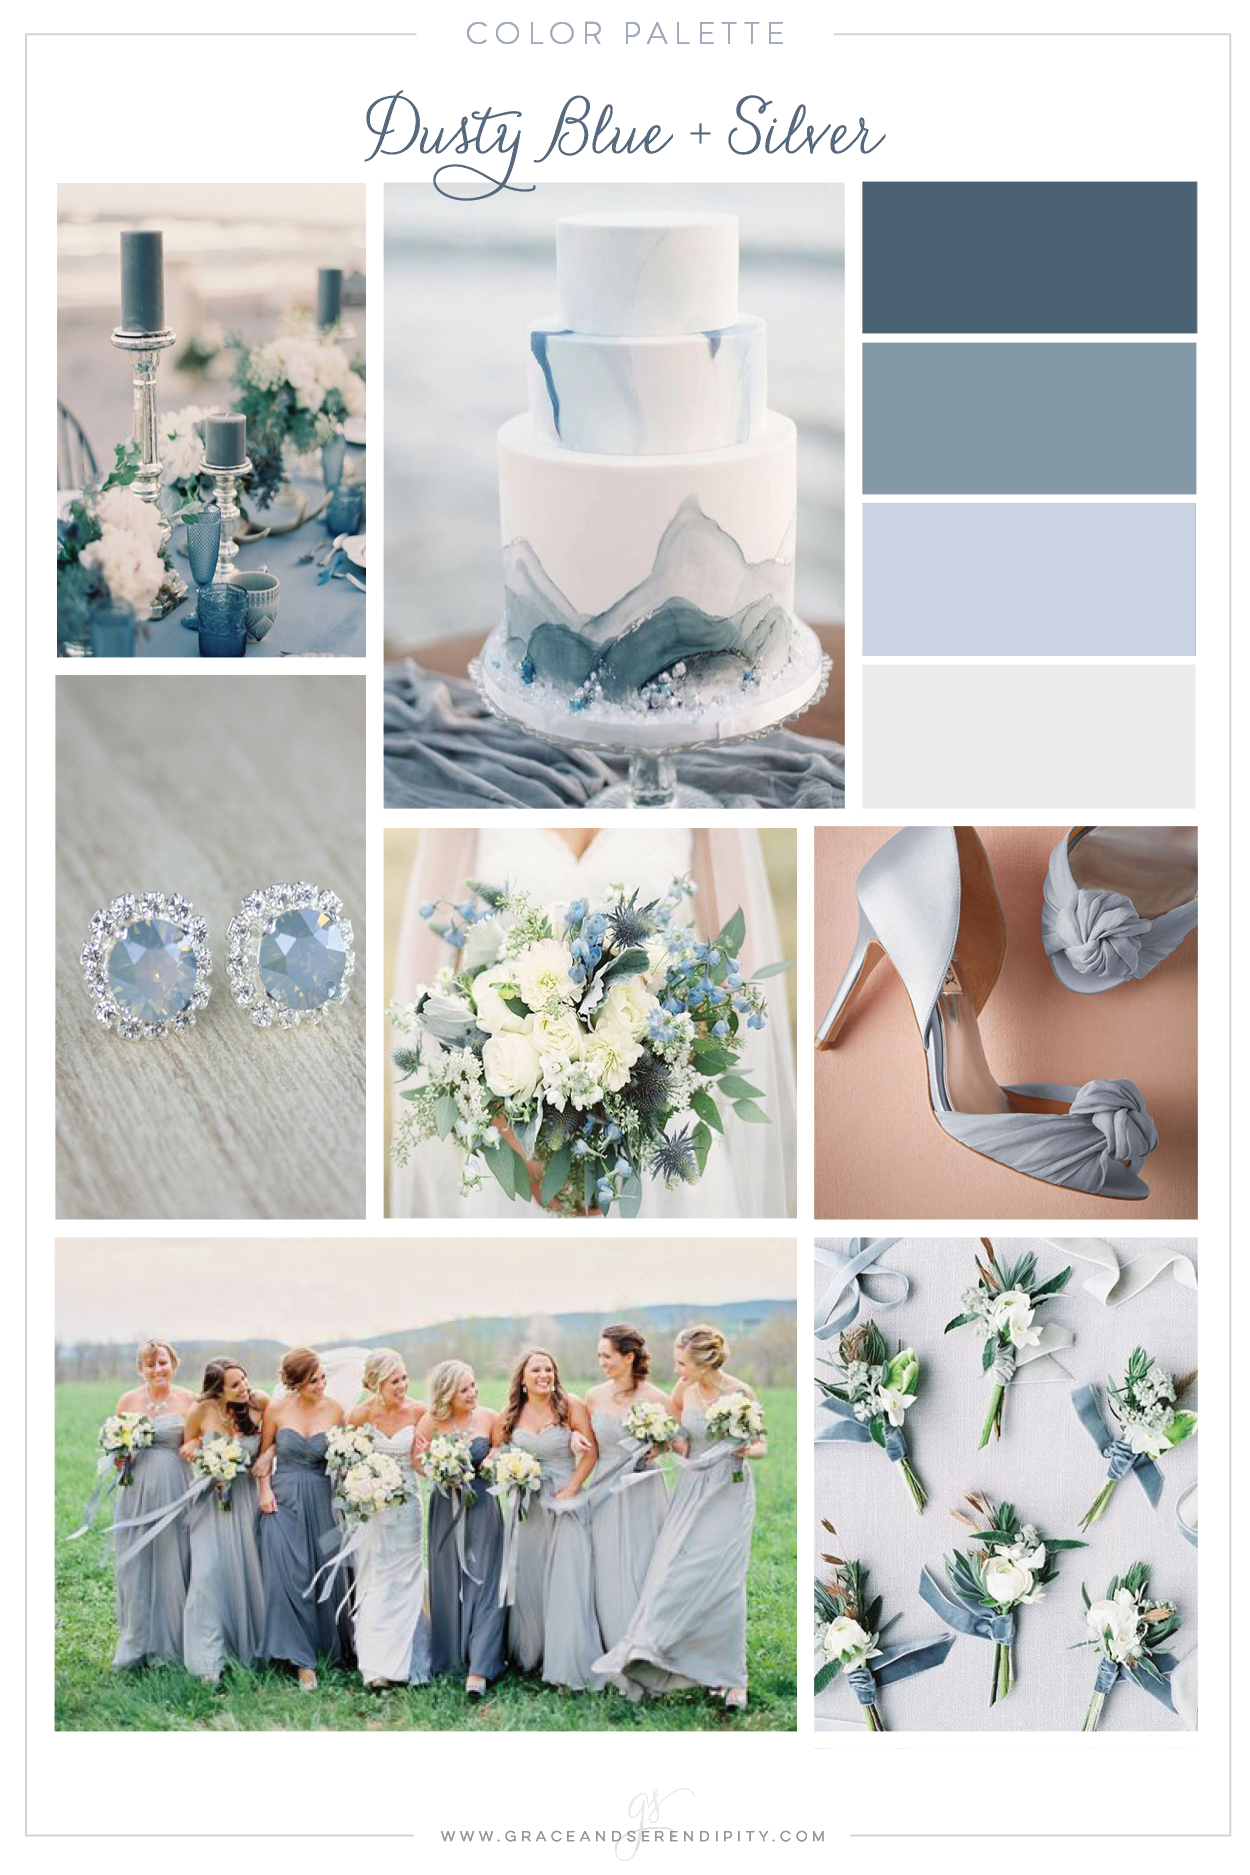 Dusty Blue and Silver Wedding Color Palette - by Grace and Serendipity